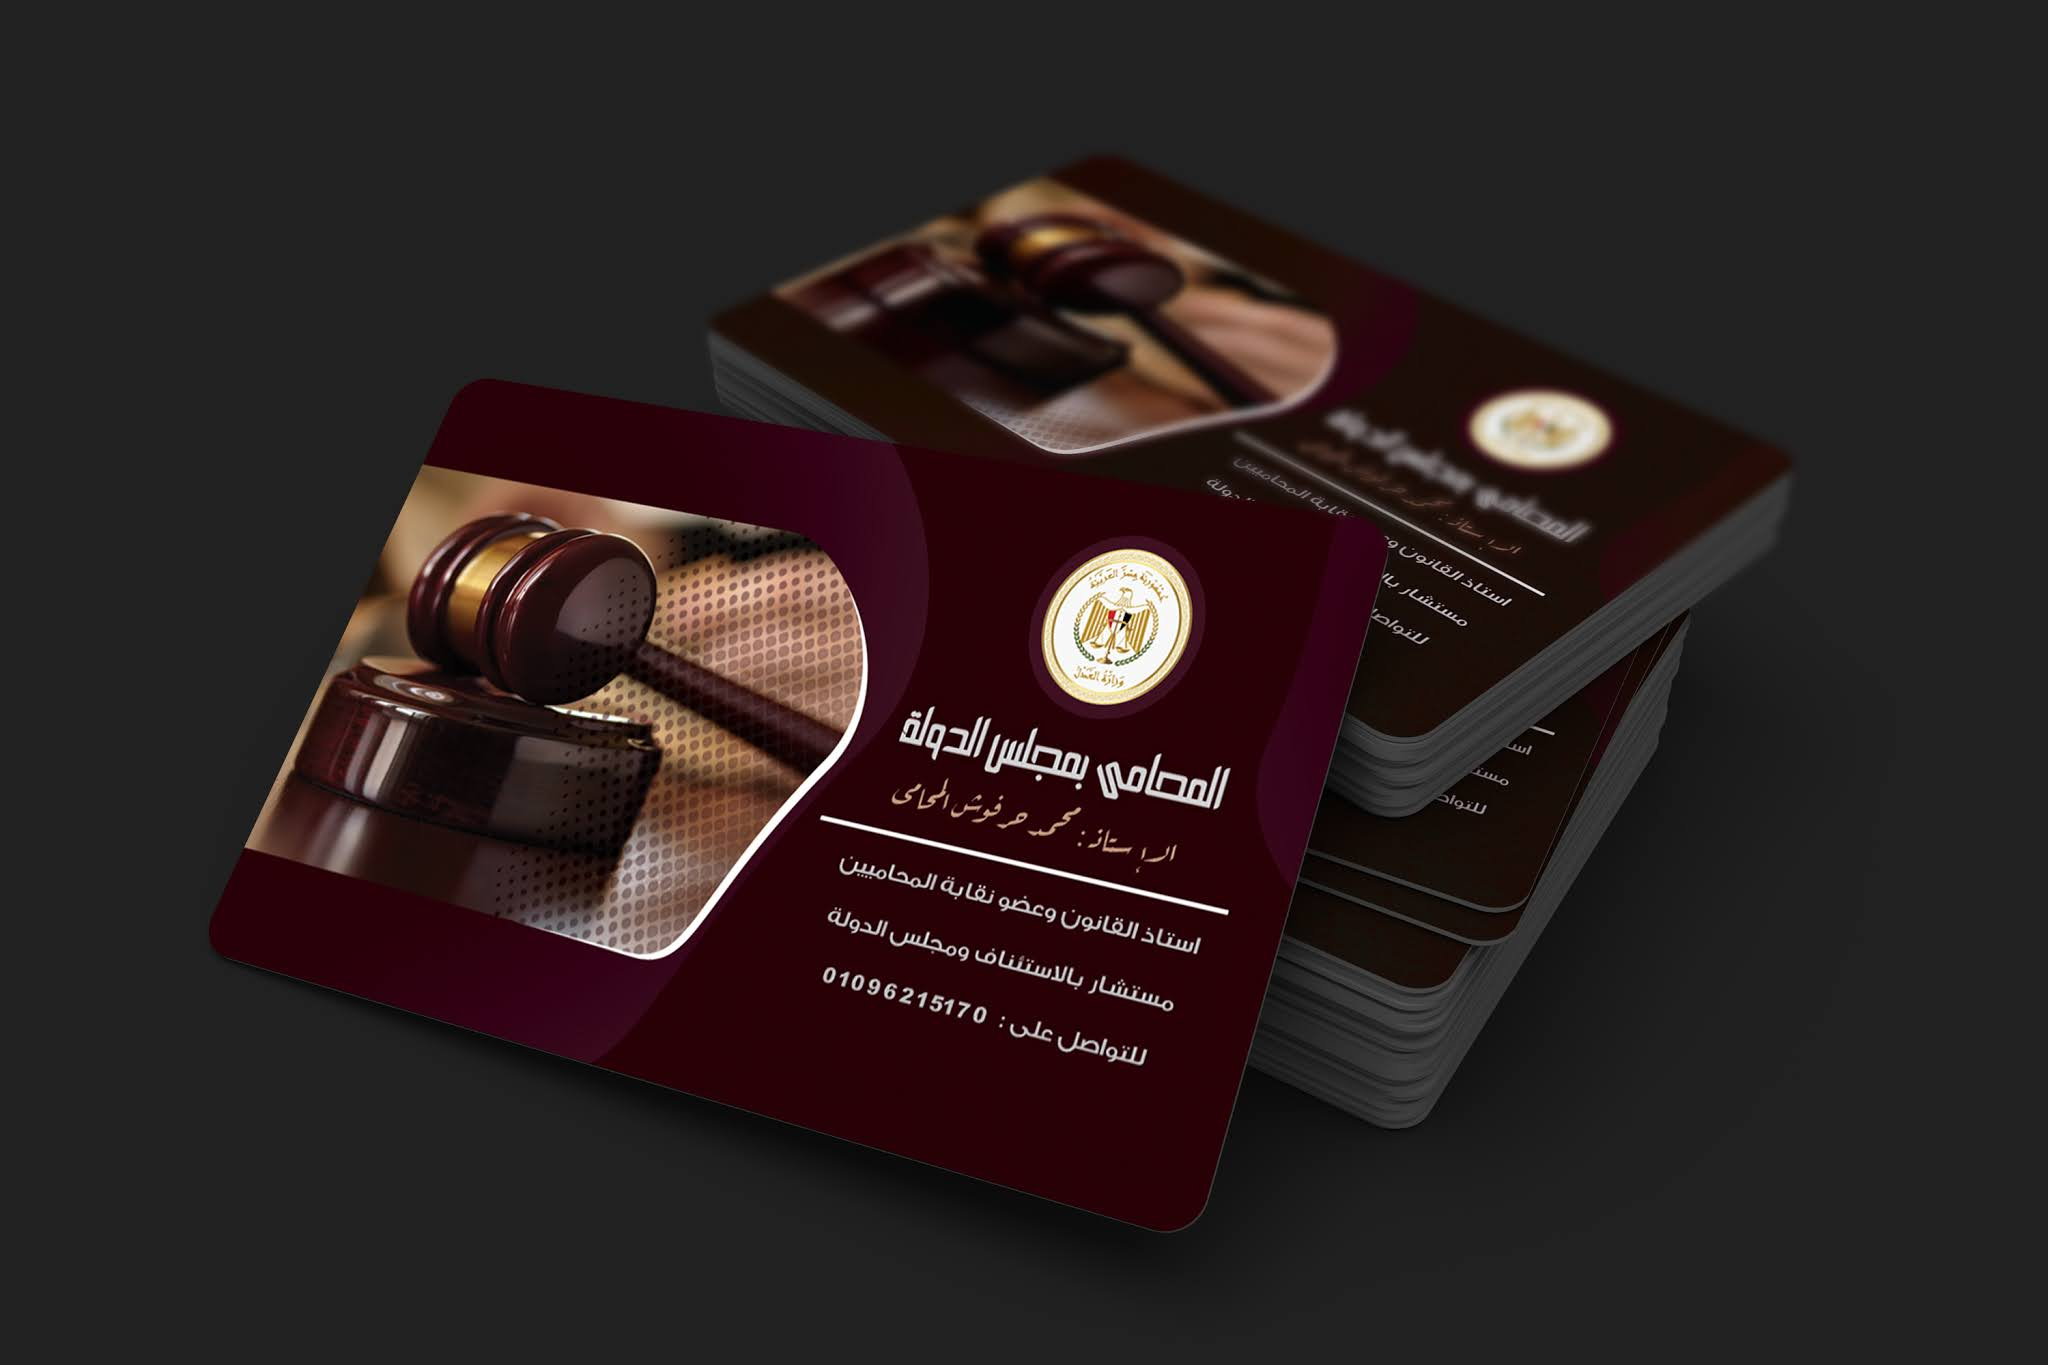 Download a personal card psd for the legal and judicial field